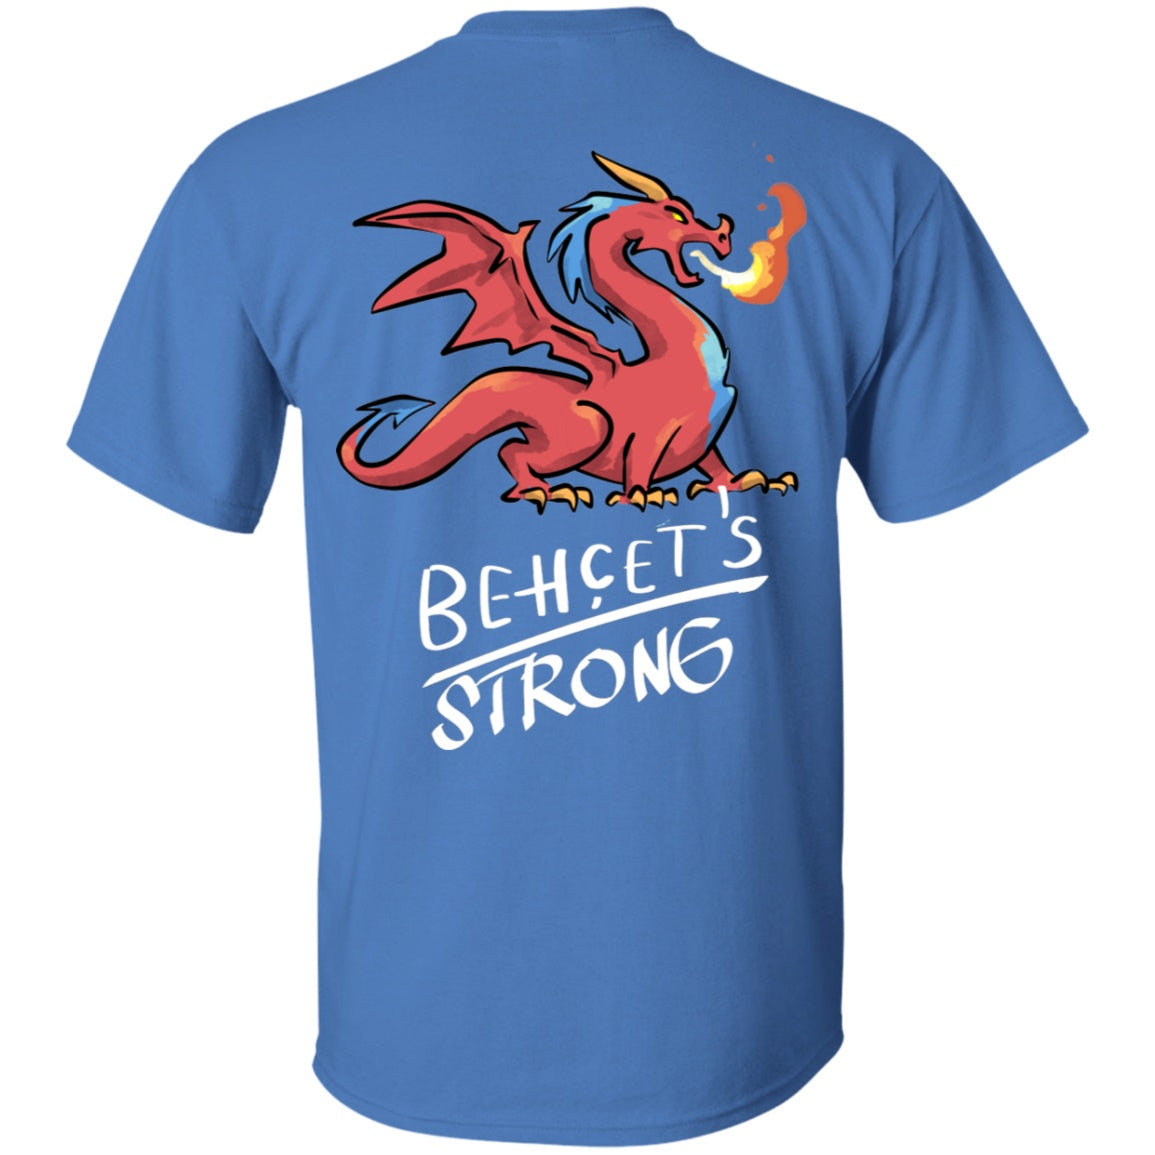 Behcets Strong Dragon Unisex T-Shirt - The Unchargeables